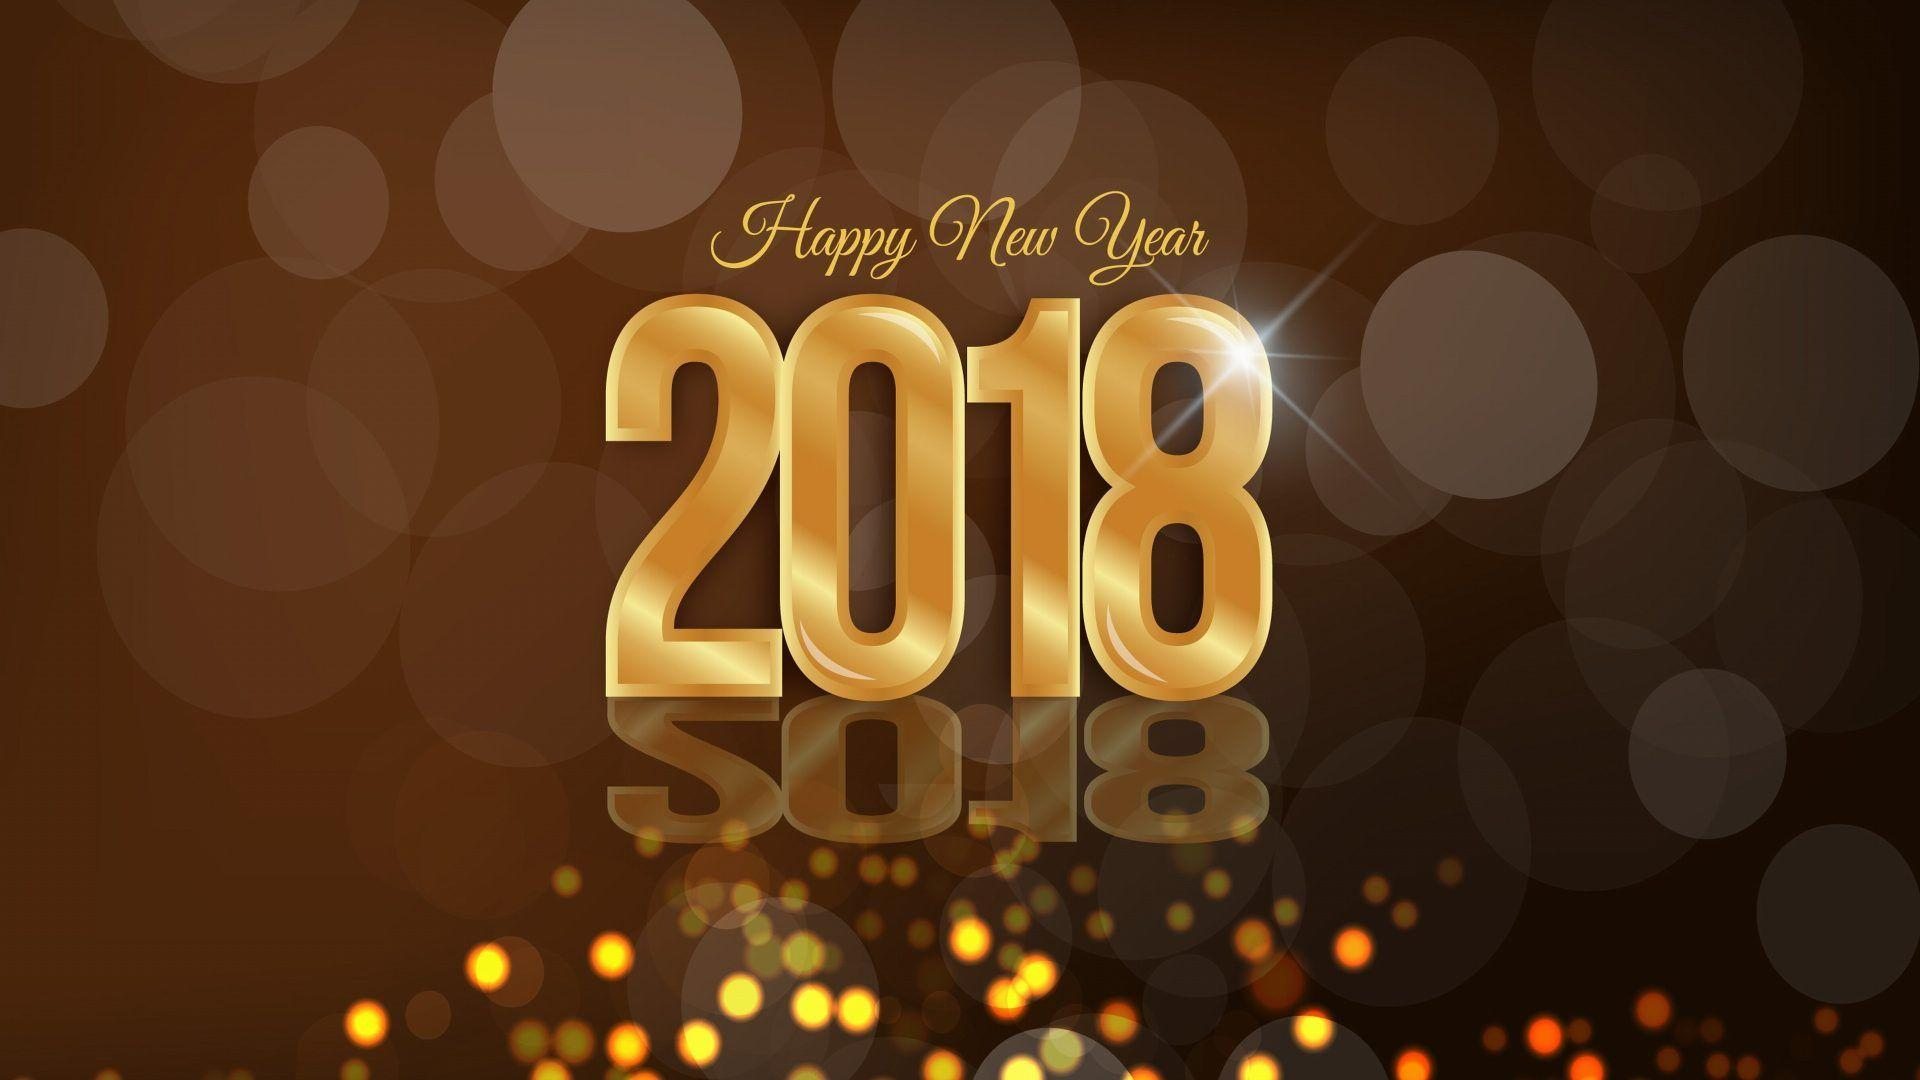 happy new year 2018 wallpaper 4k hd download for desktop